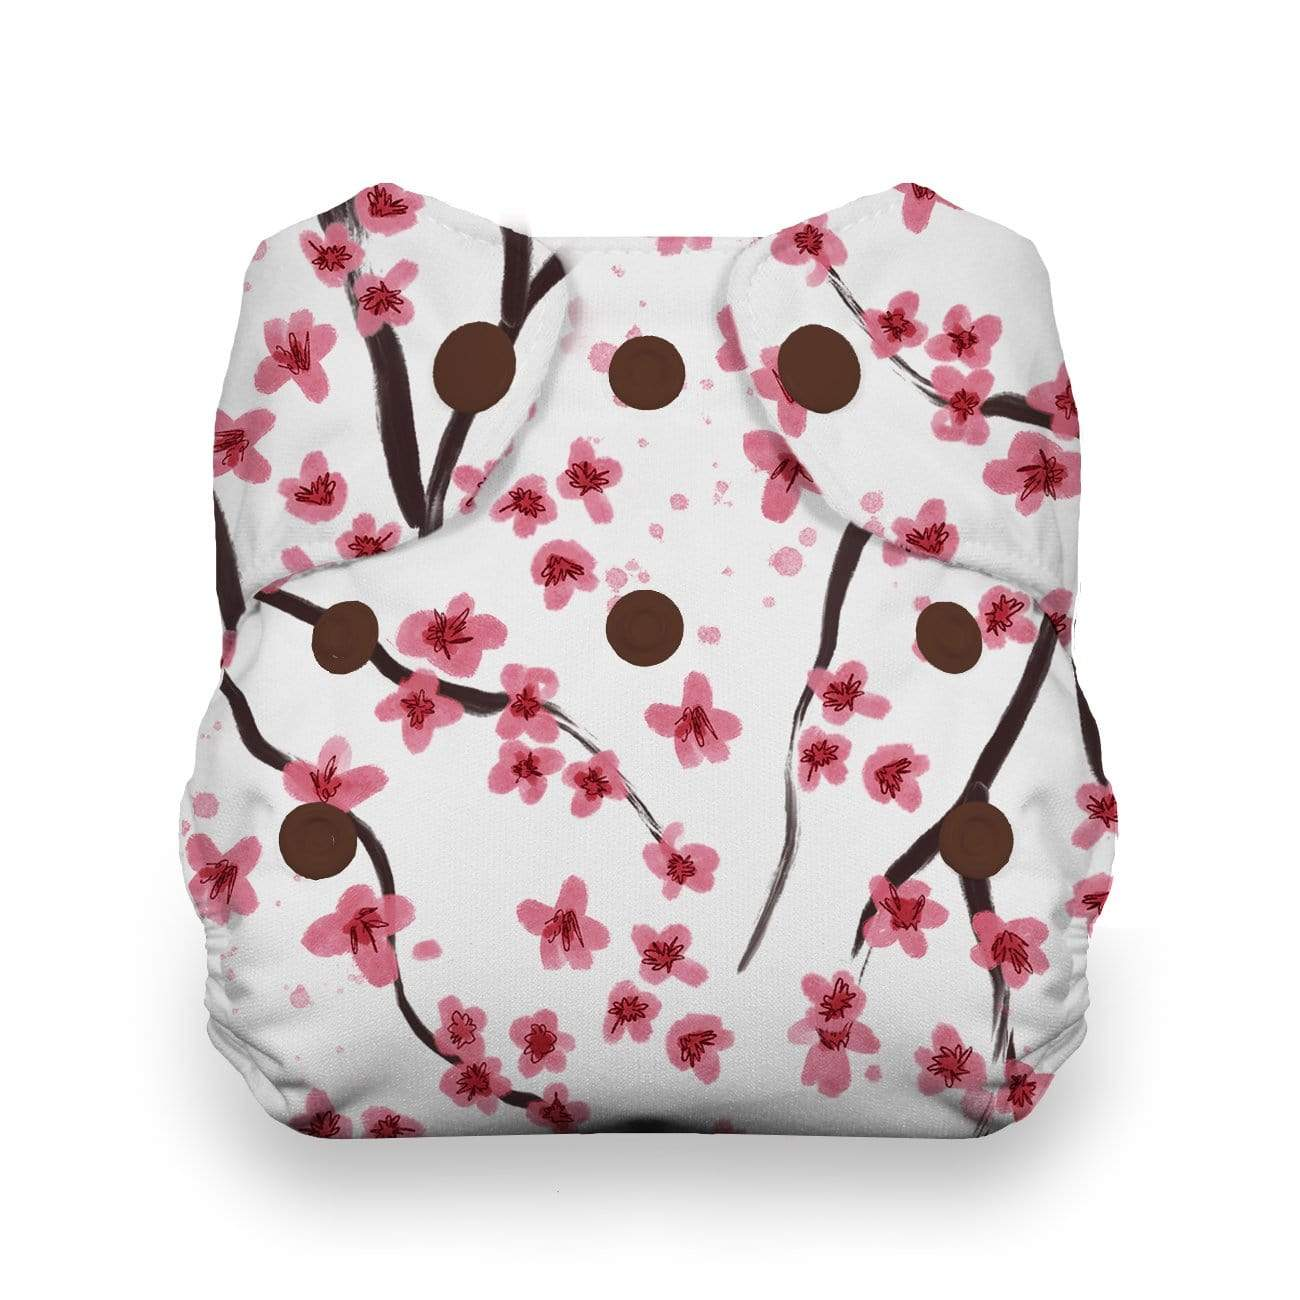 Thirsties Natural Newborn Snap All In One Diaper - Sakura